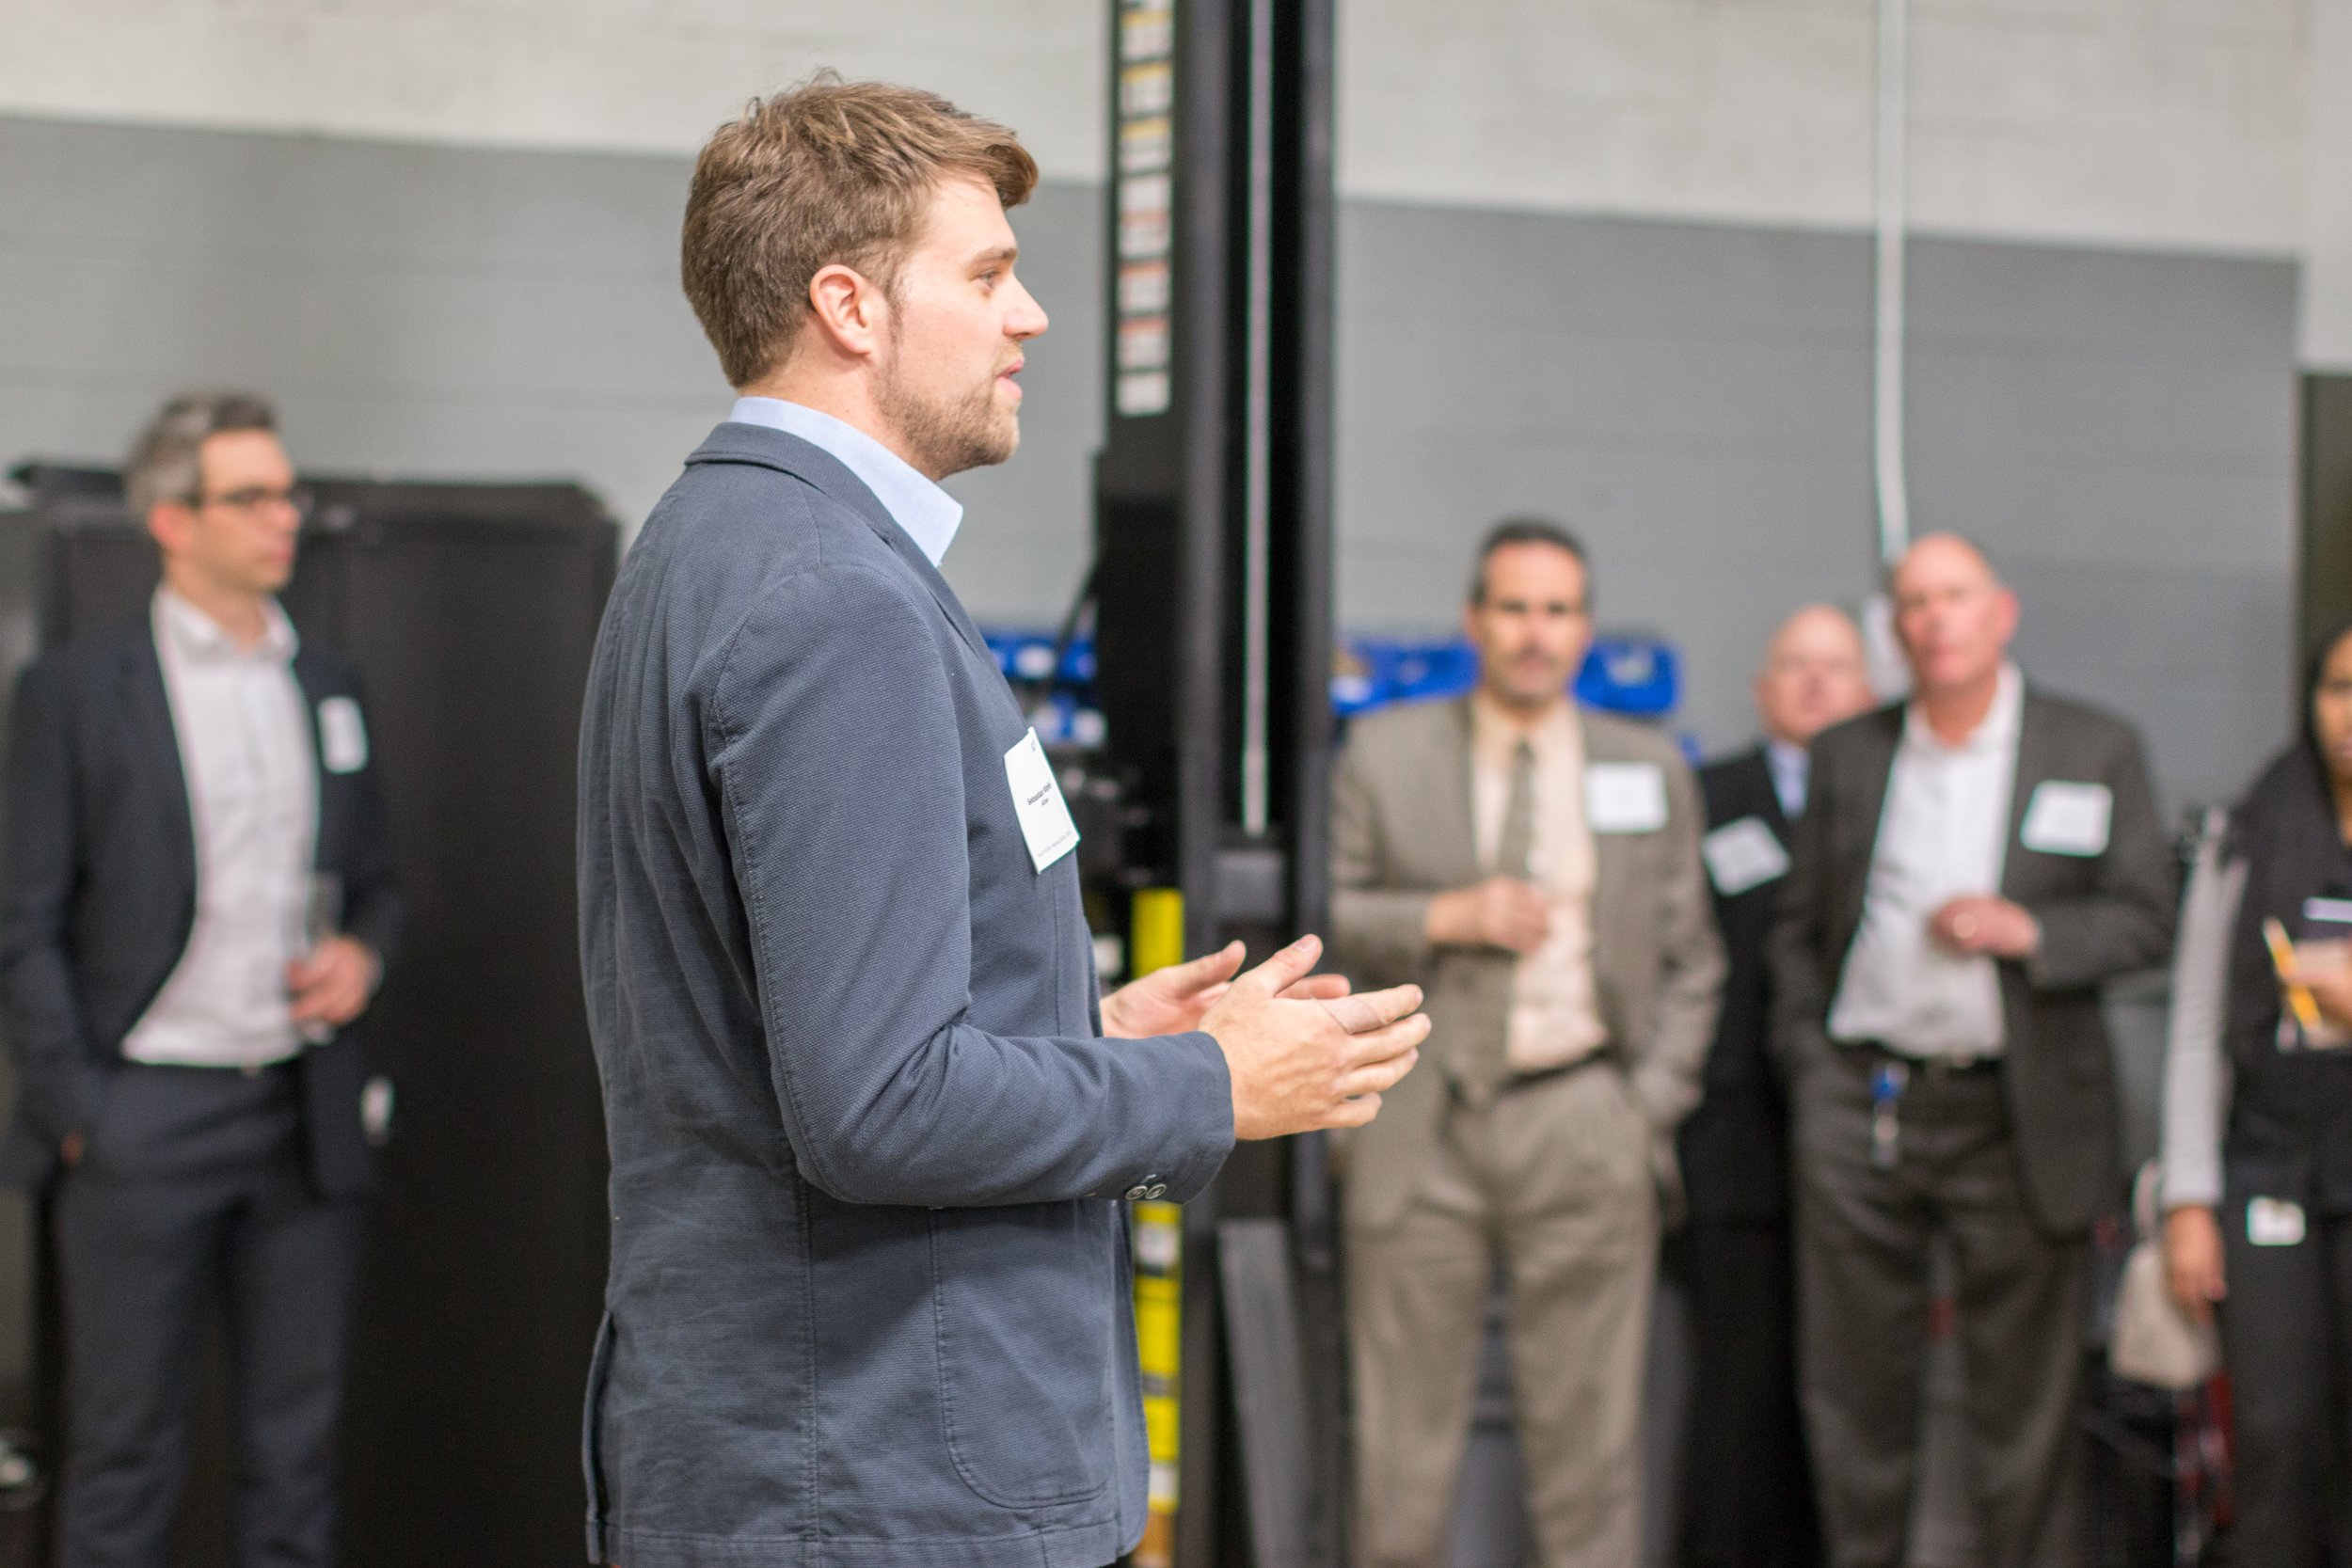 Sebastian Wipfler conducting a tour of the Passive Safety Center